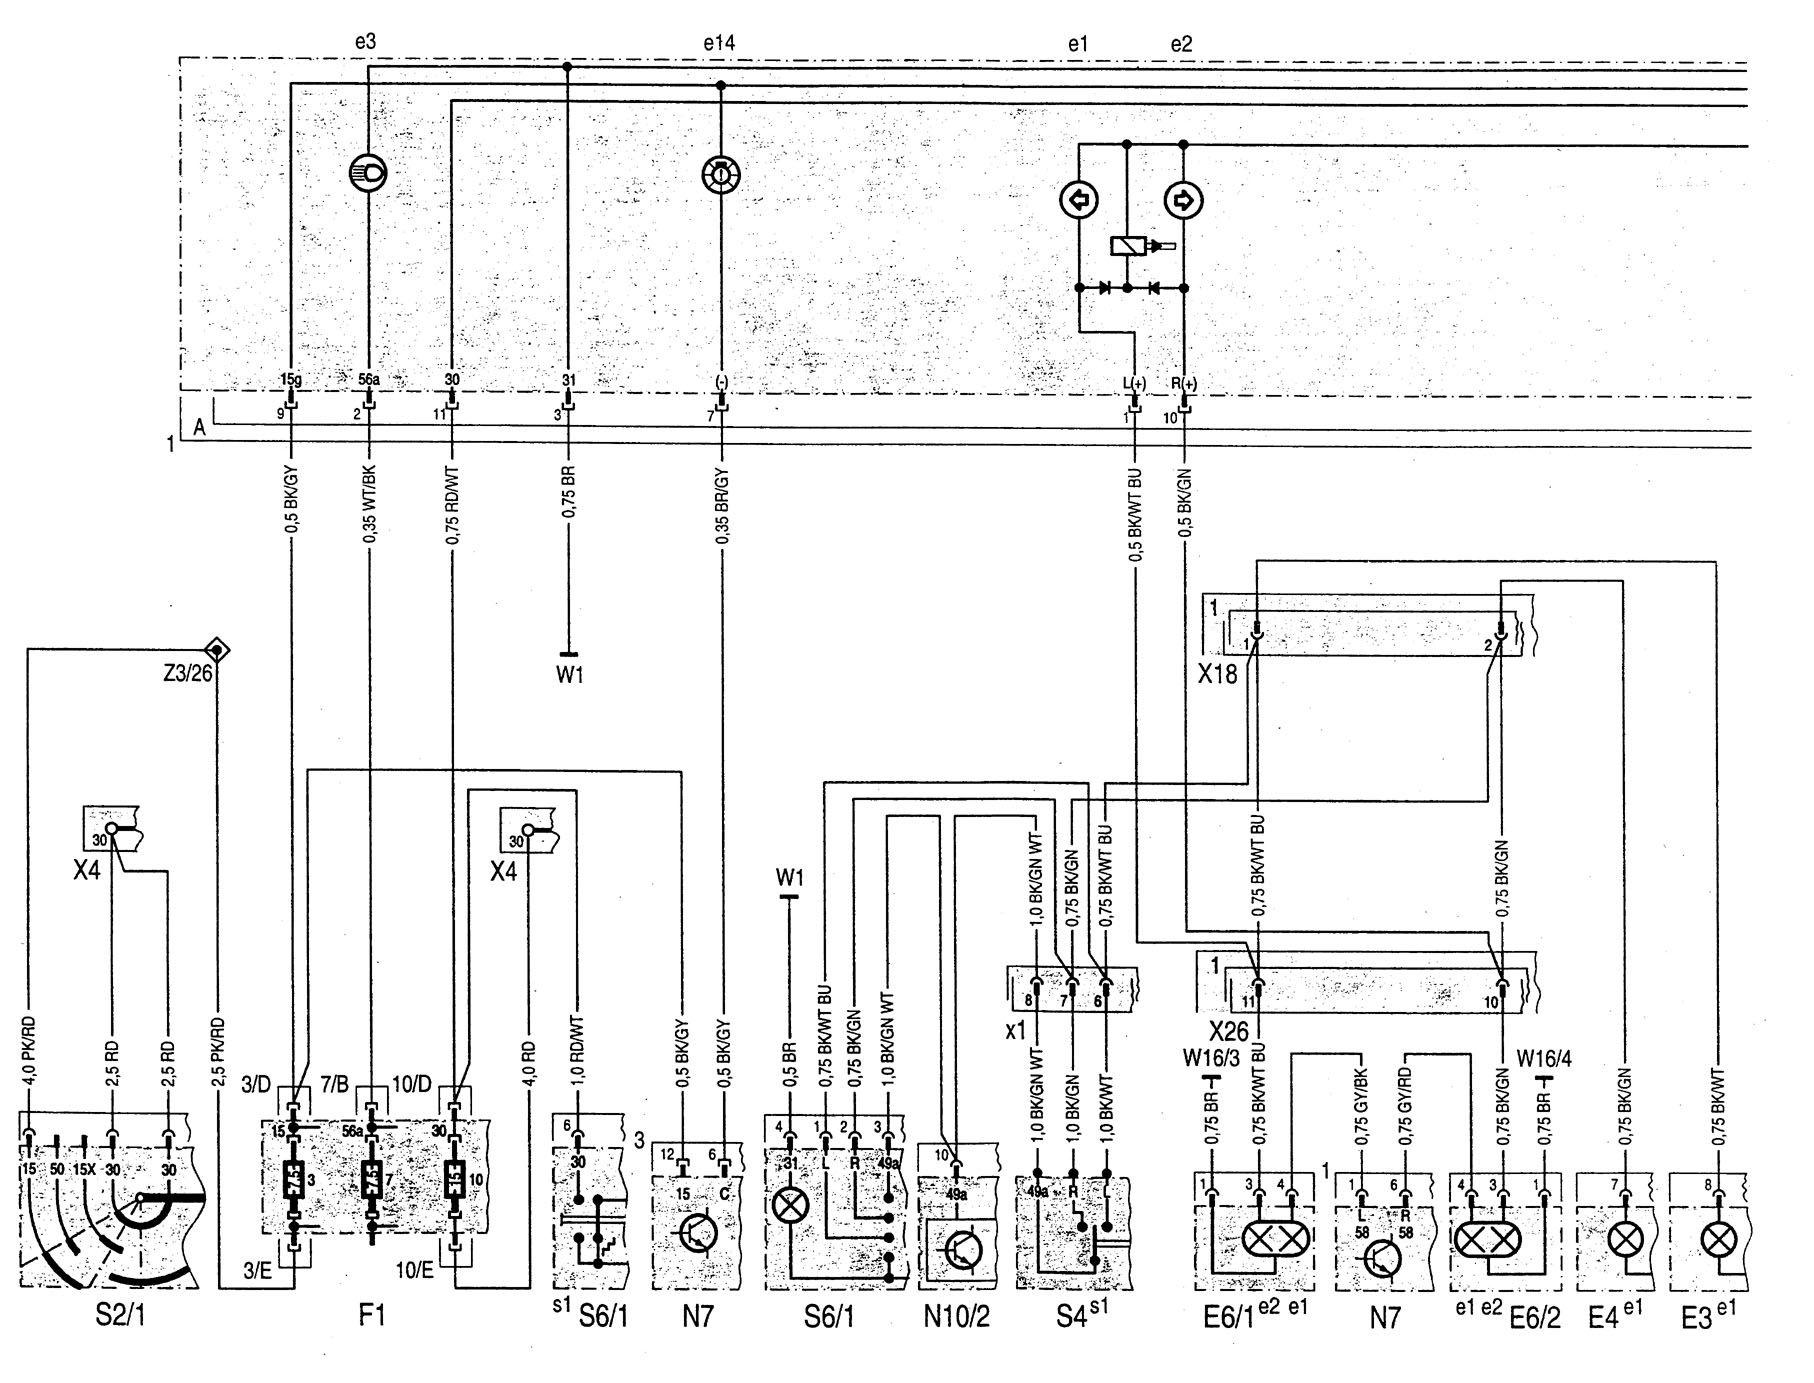 mercedes benz 1994 wiring diagram mercedes benz c220 wiring mercedes-benz c220 (1994 - 1996) - wiring diagrams ... #15